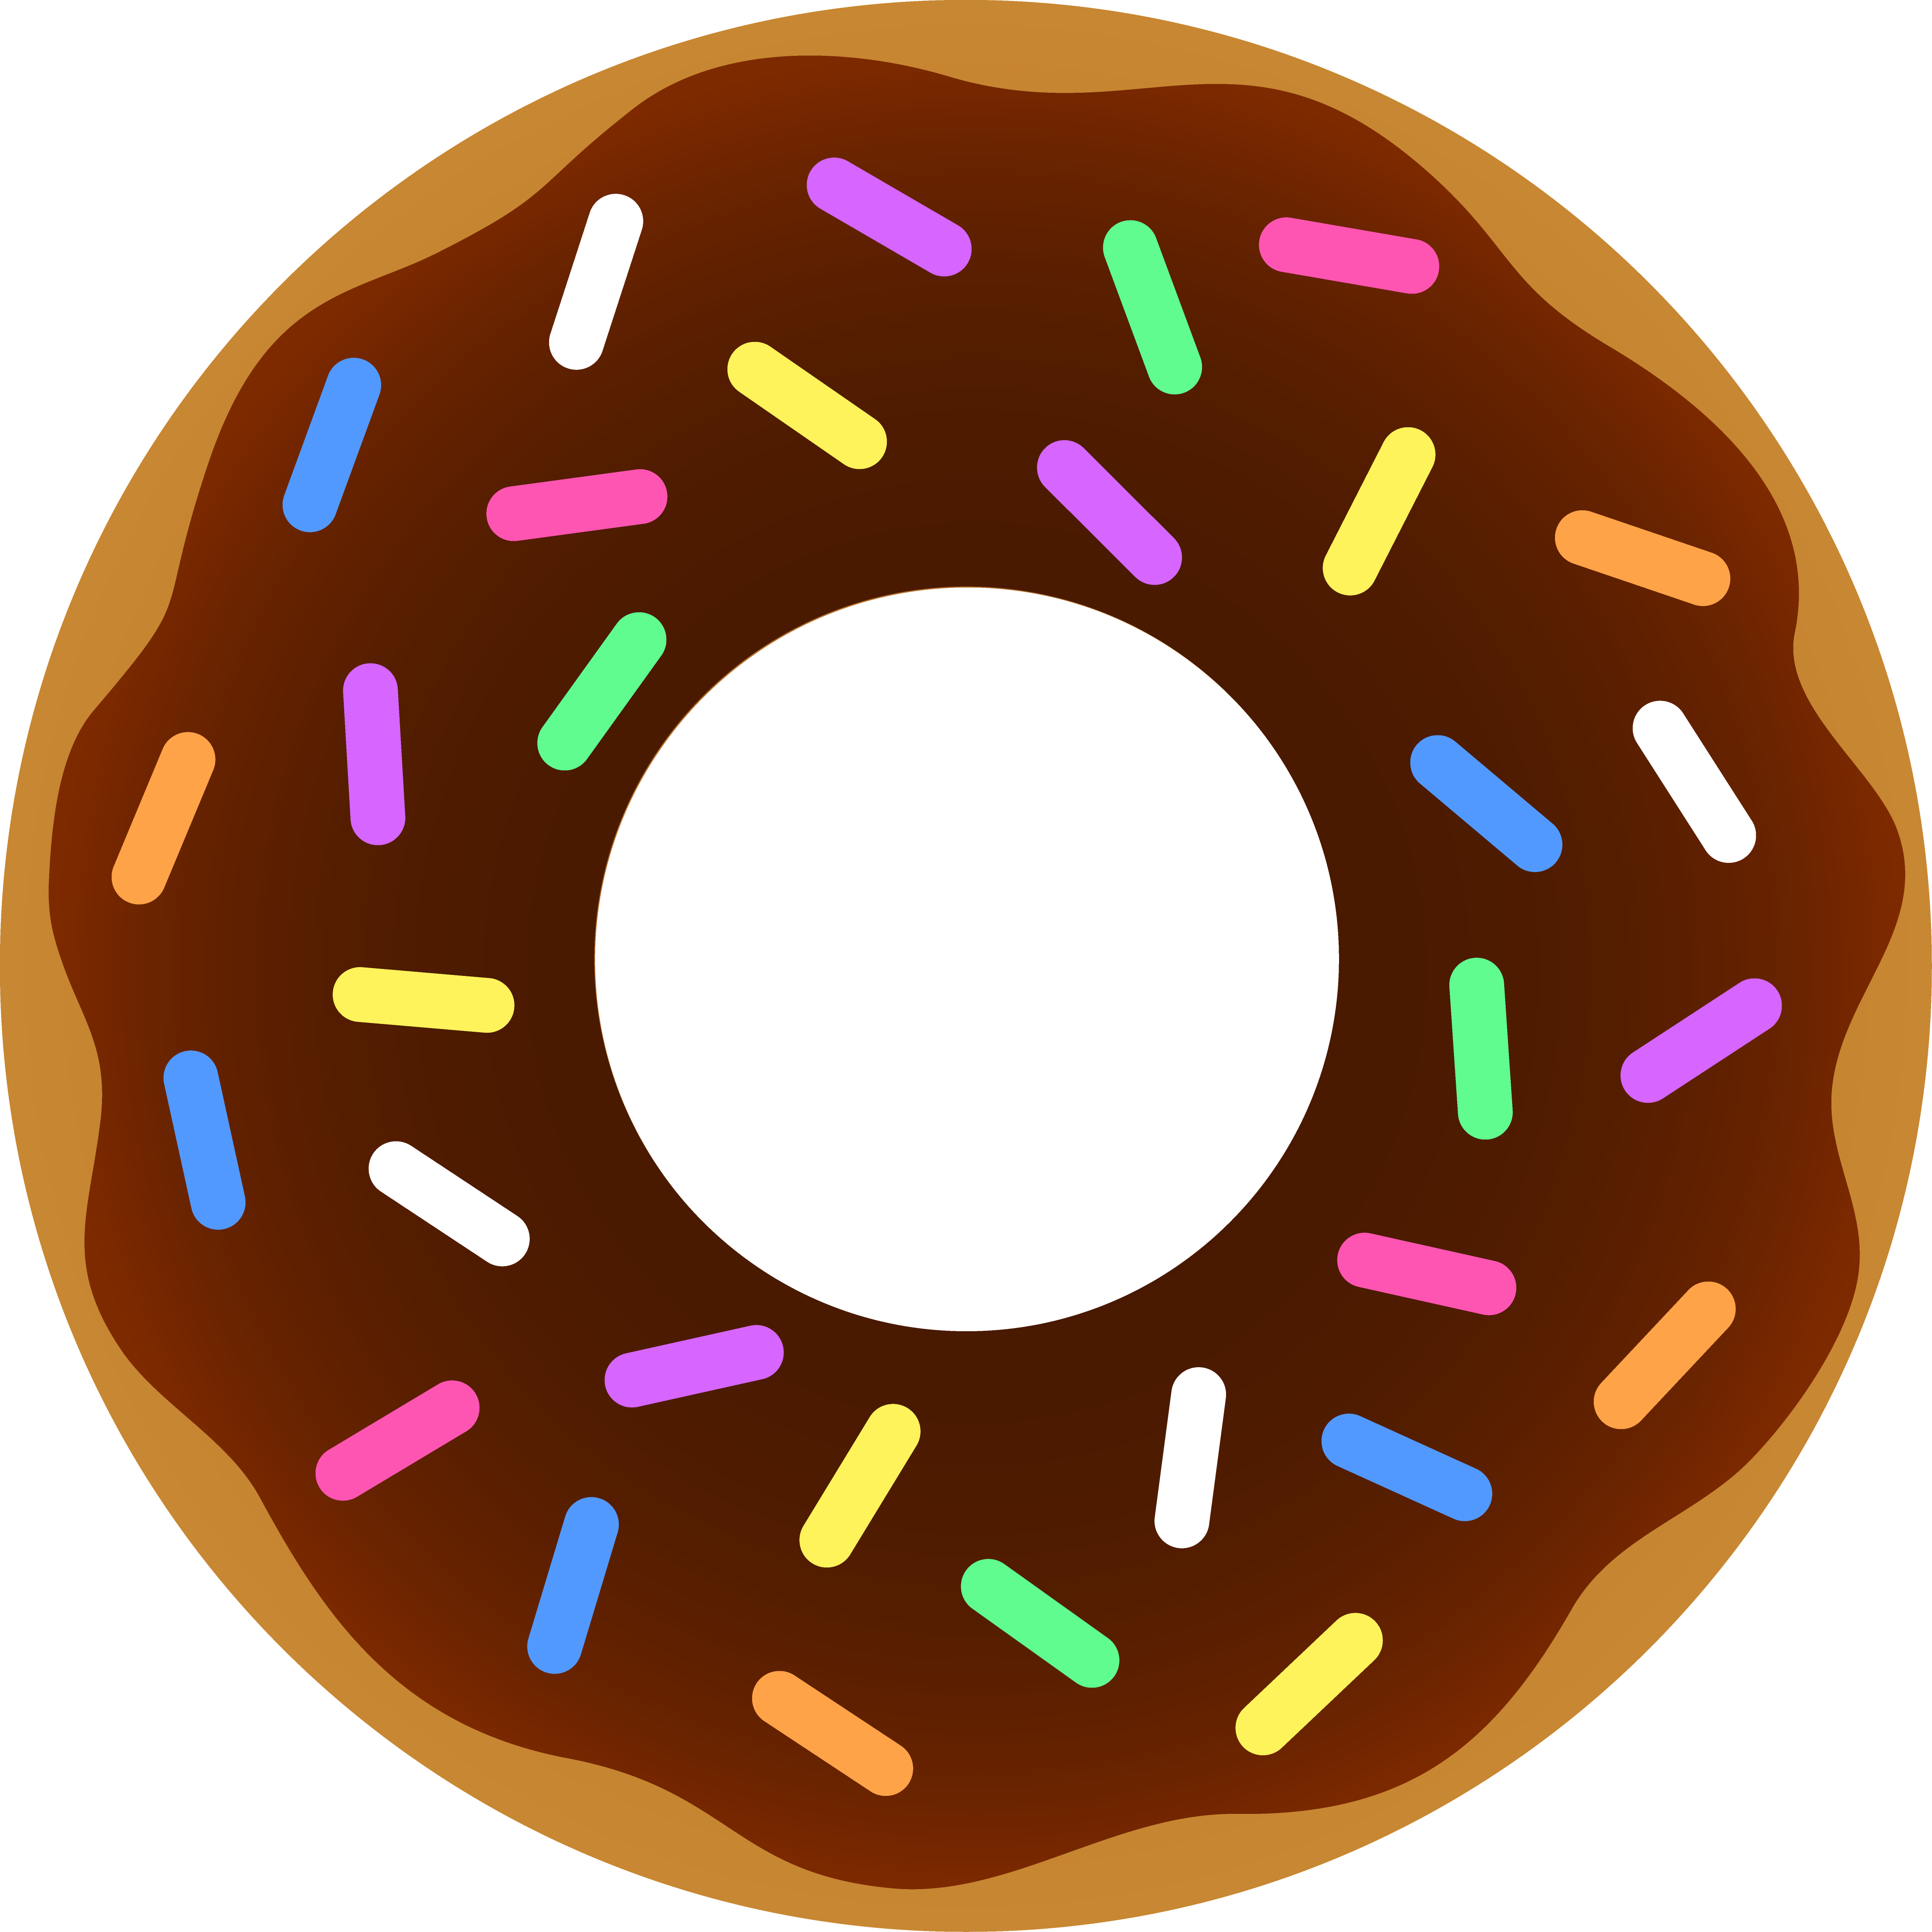 Word clipart donut Free Free Clipart Donut pw